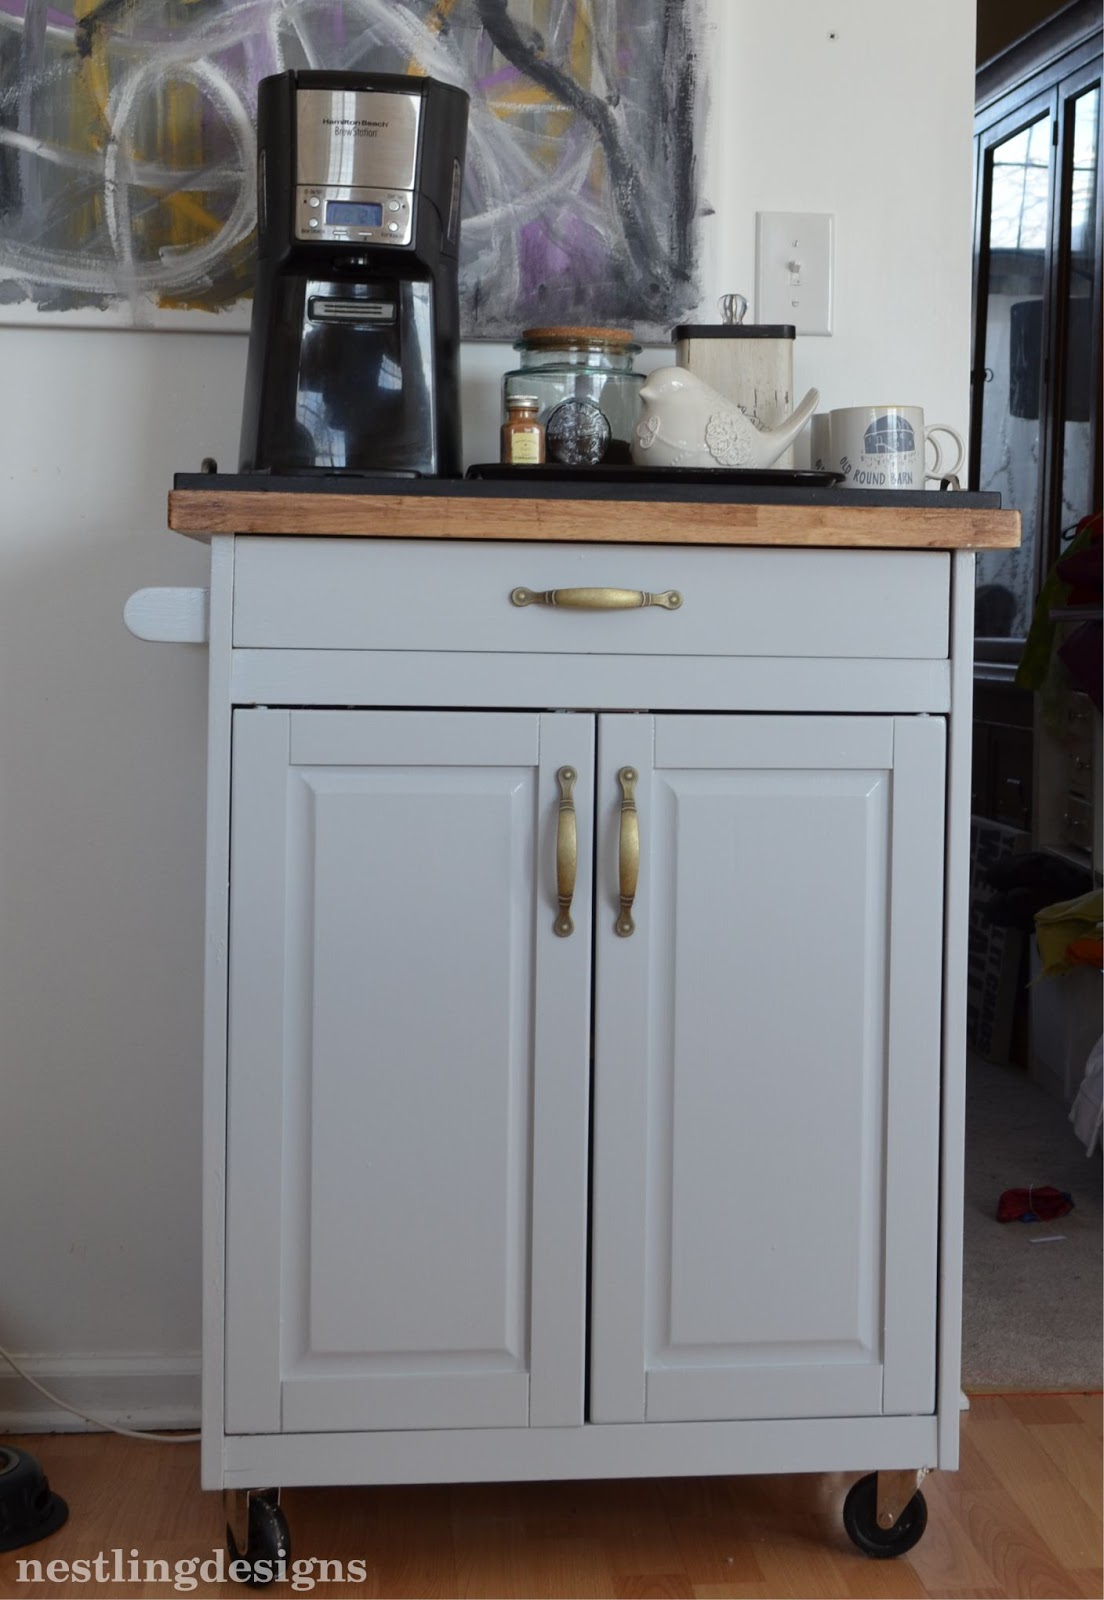 Nestling: One Room at a Time :: Kitchen Cart turned Coffee Bar DIY